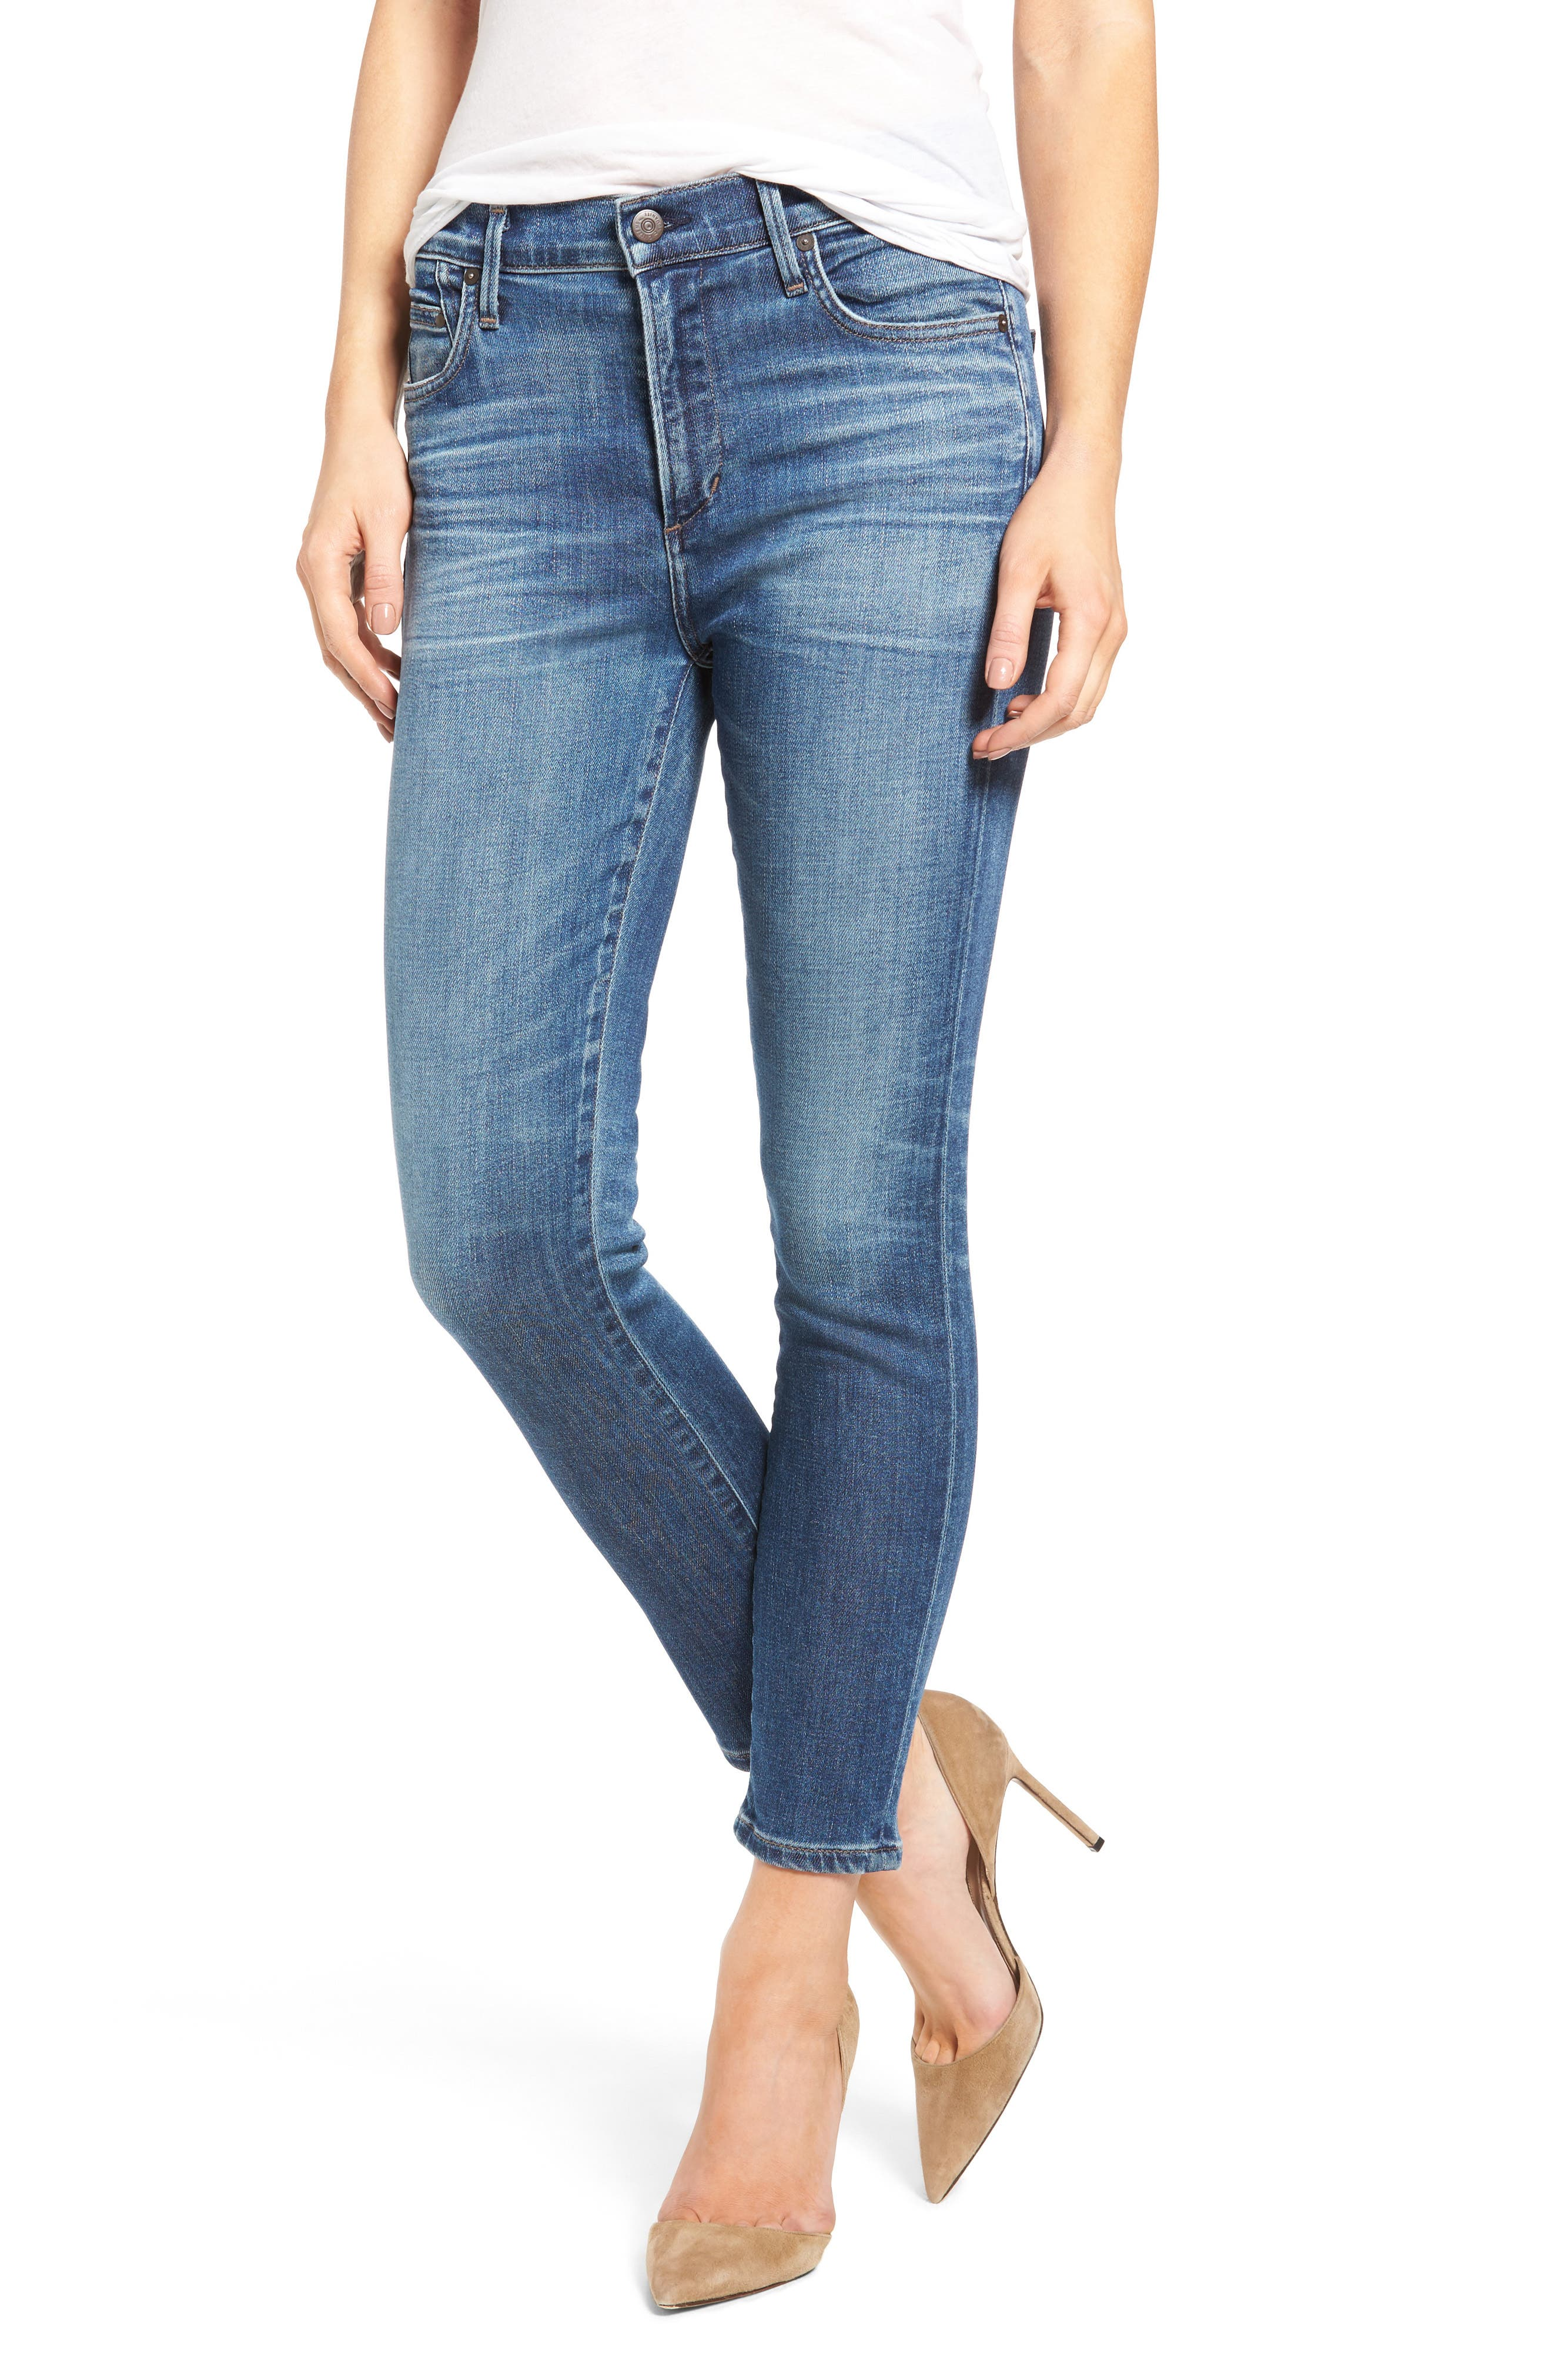 Rocket High Waist Crop Skinny Jeans,                             Main thumbnail 1, color,                             409